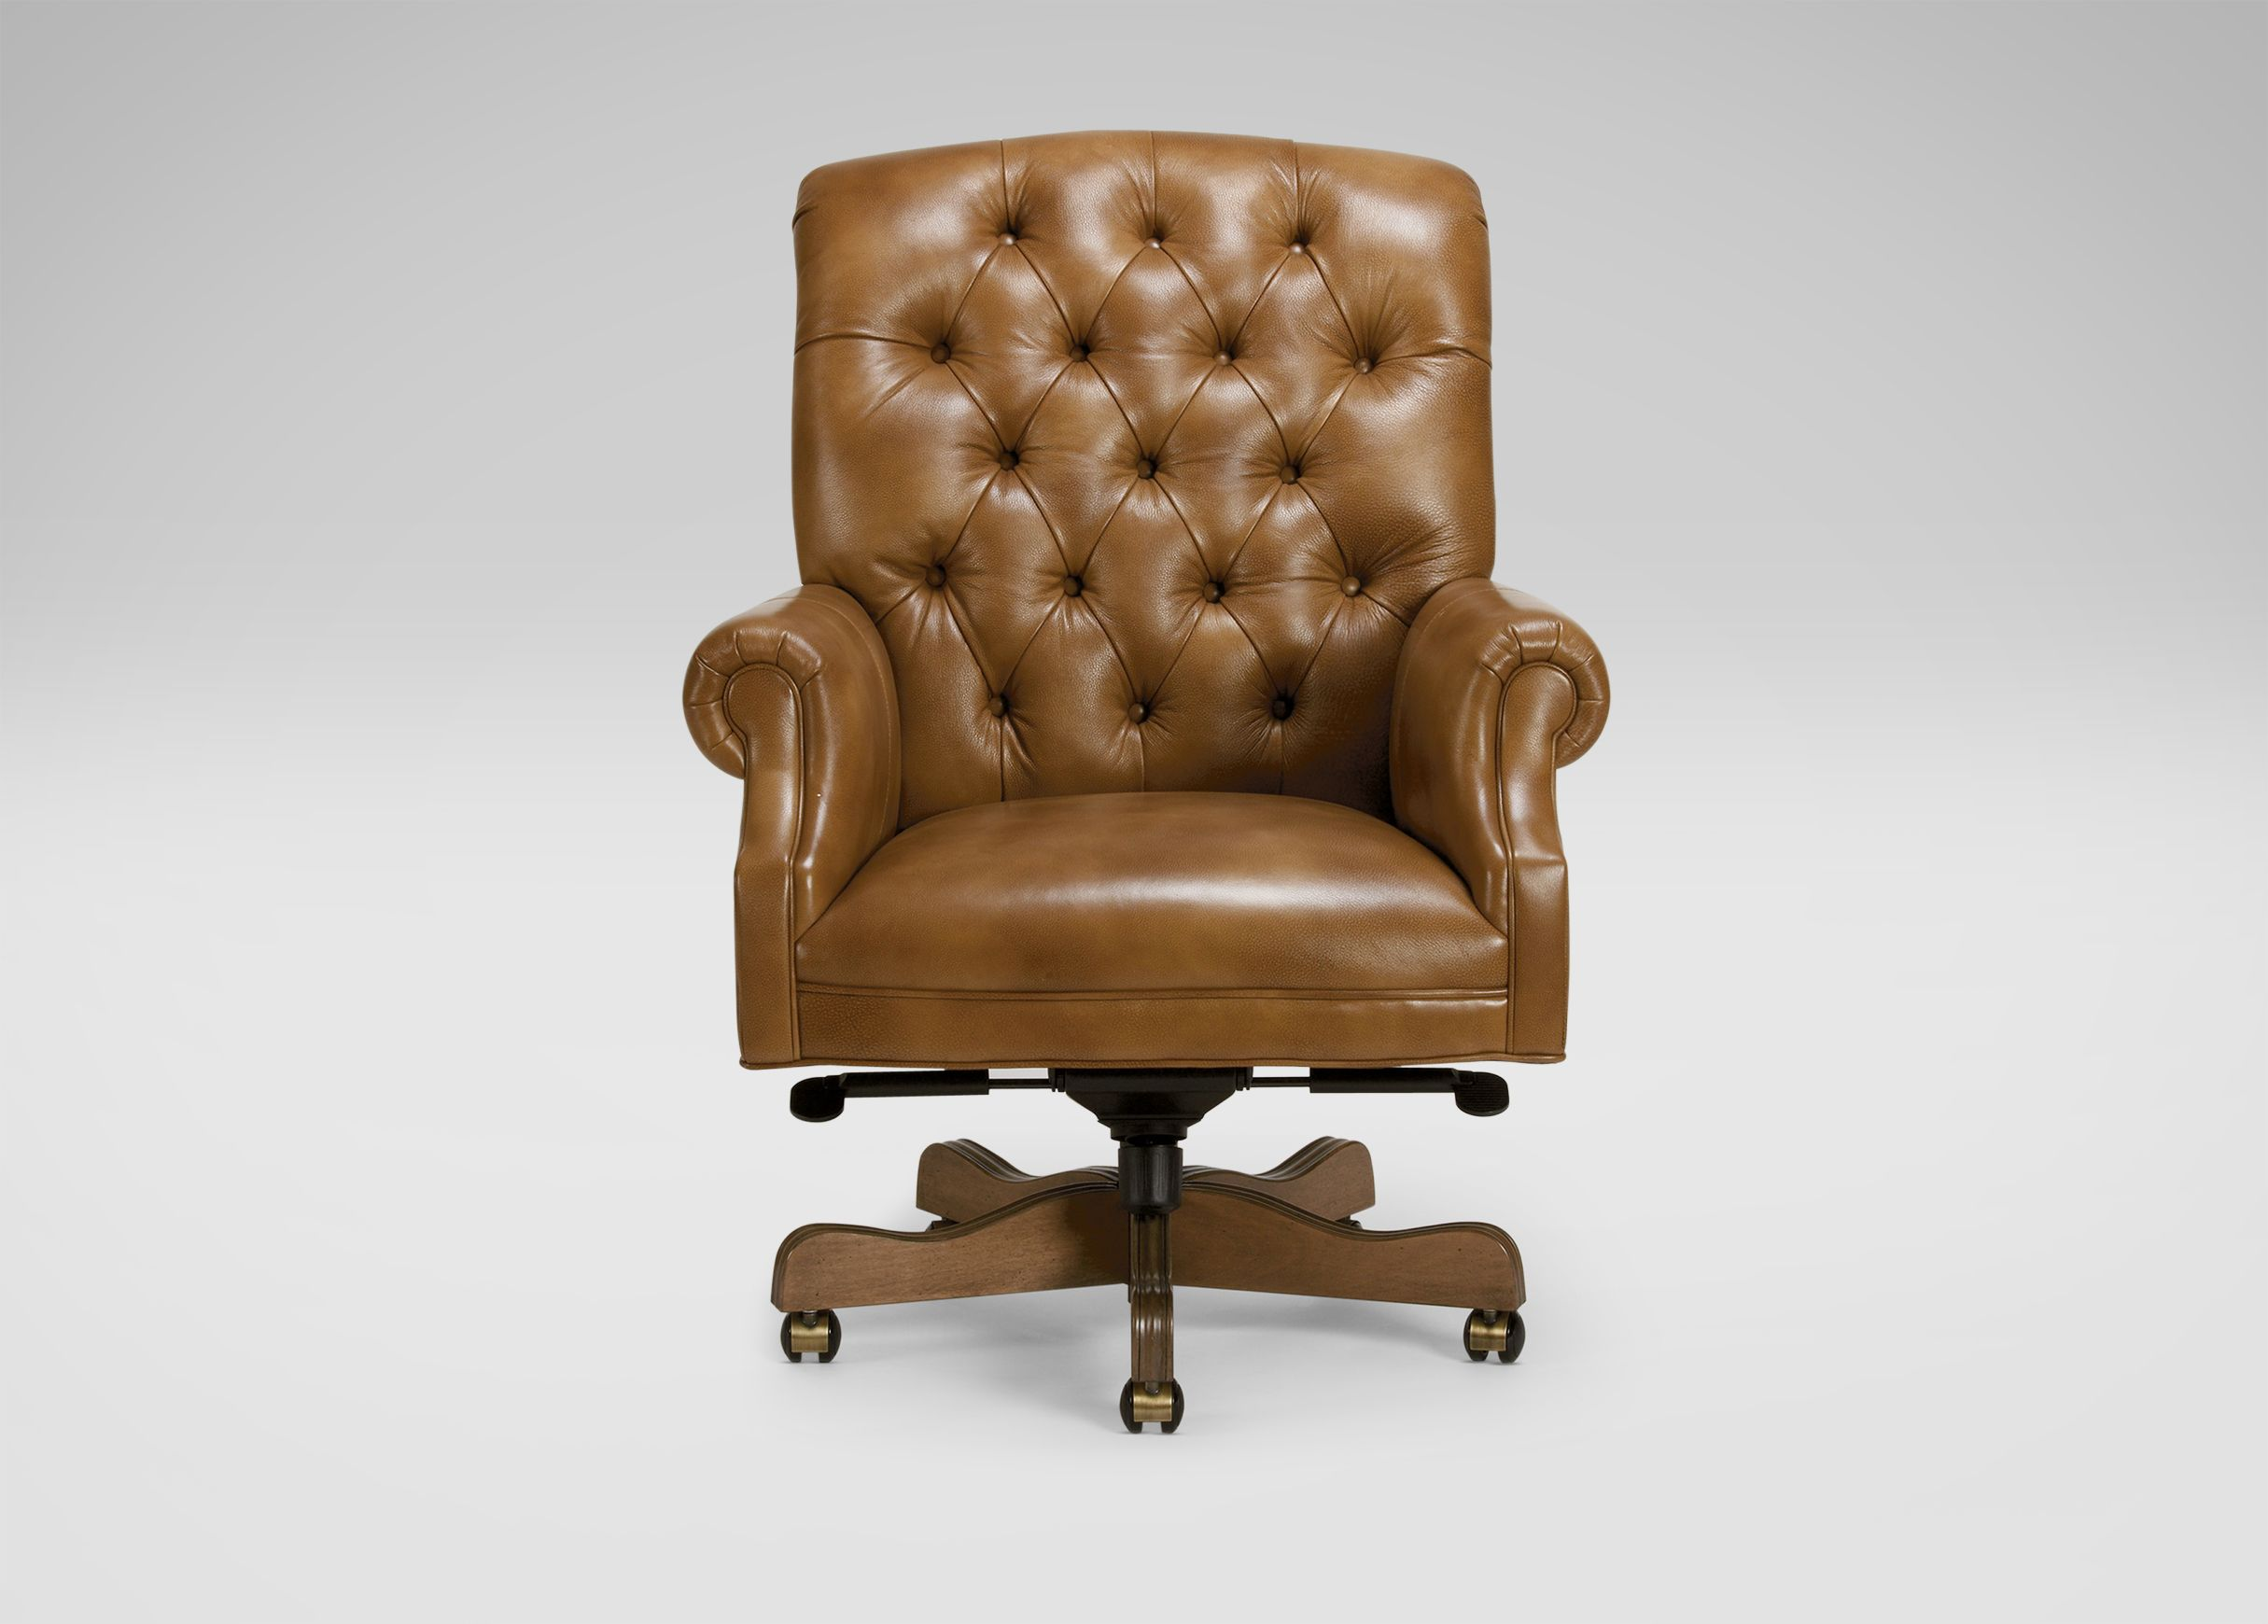 Tanner Leather Desk Chair Ethan Allen